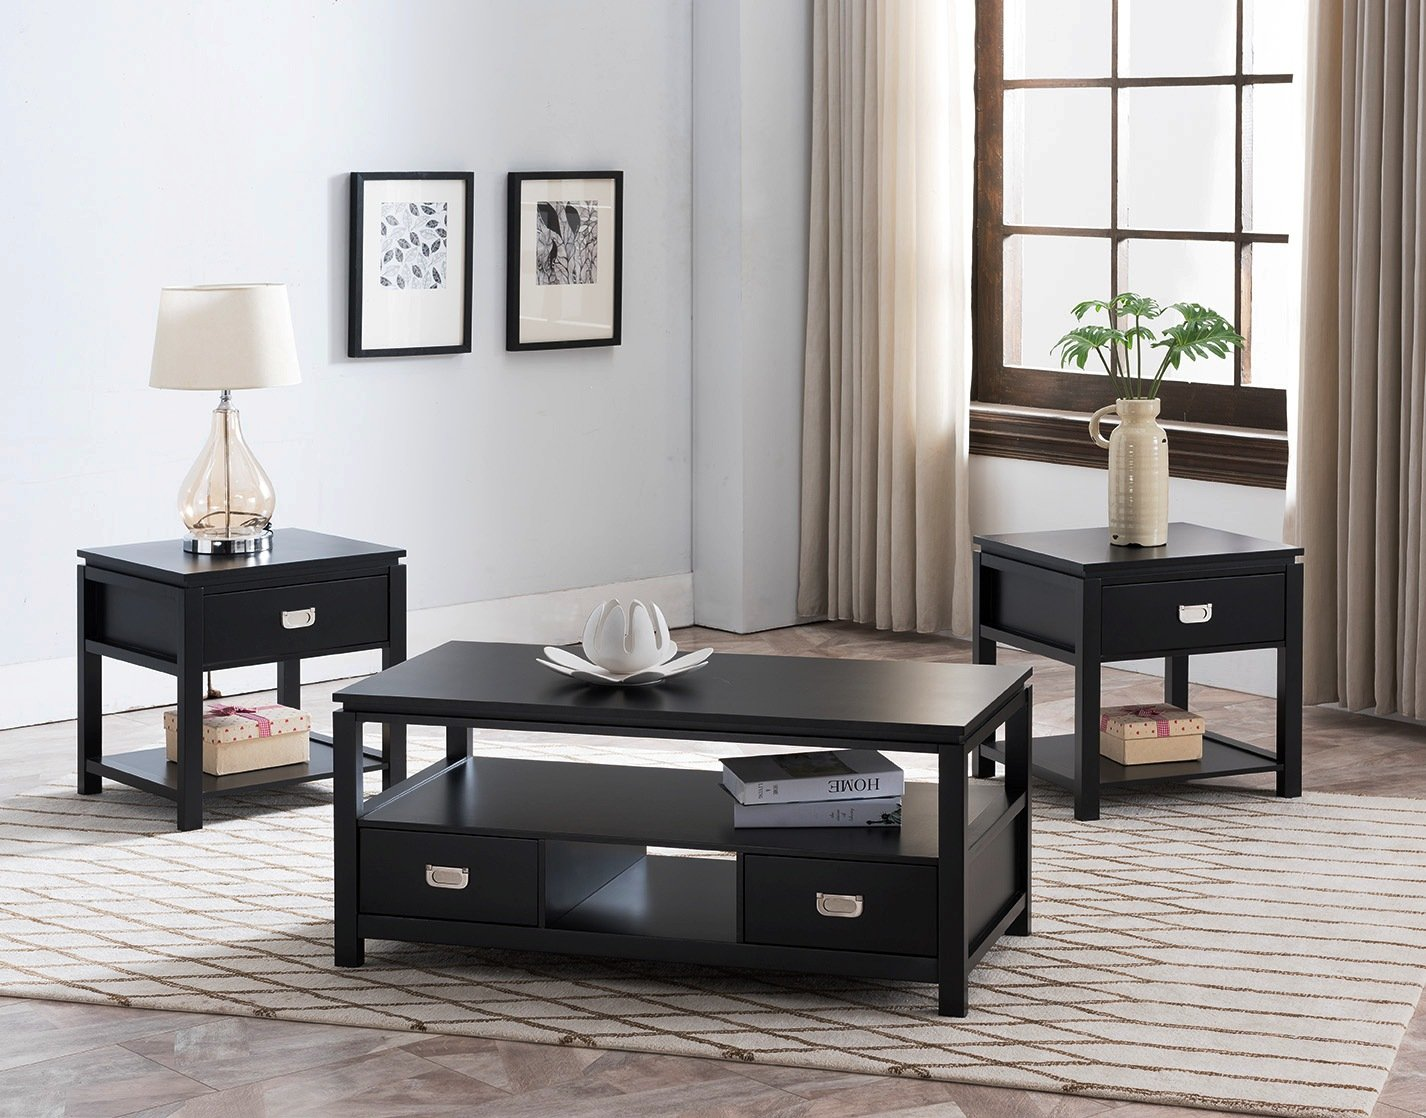 Kings Brand Furniture 3 Piece Black Finish Wood Storage Occasional Table Set, Coffee Table & 2 End Tables by Kings Brand Furniture